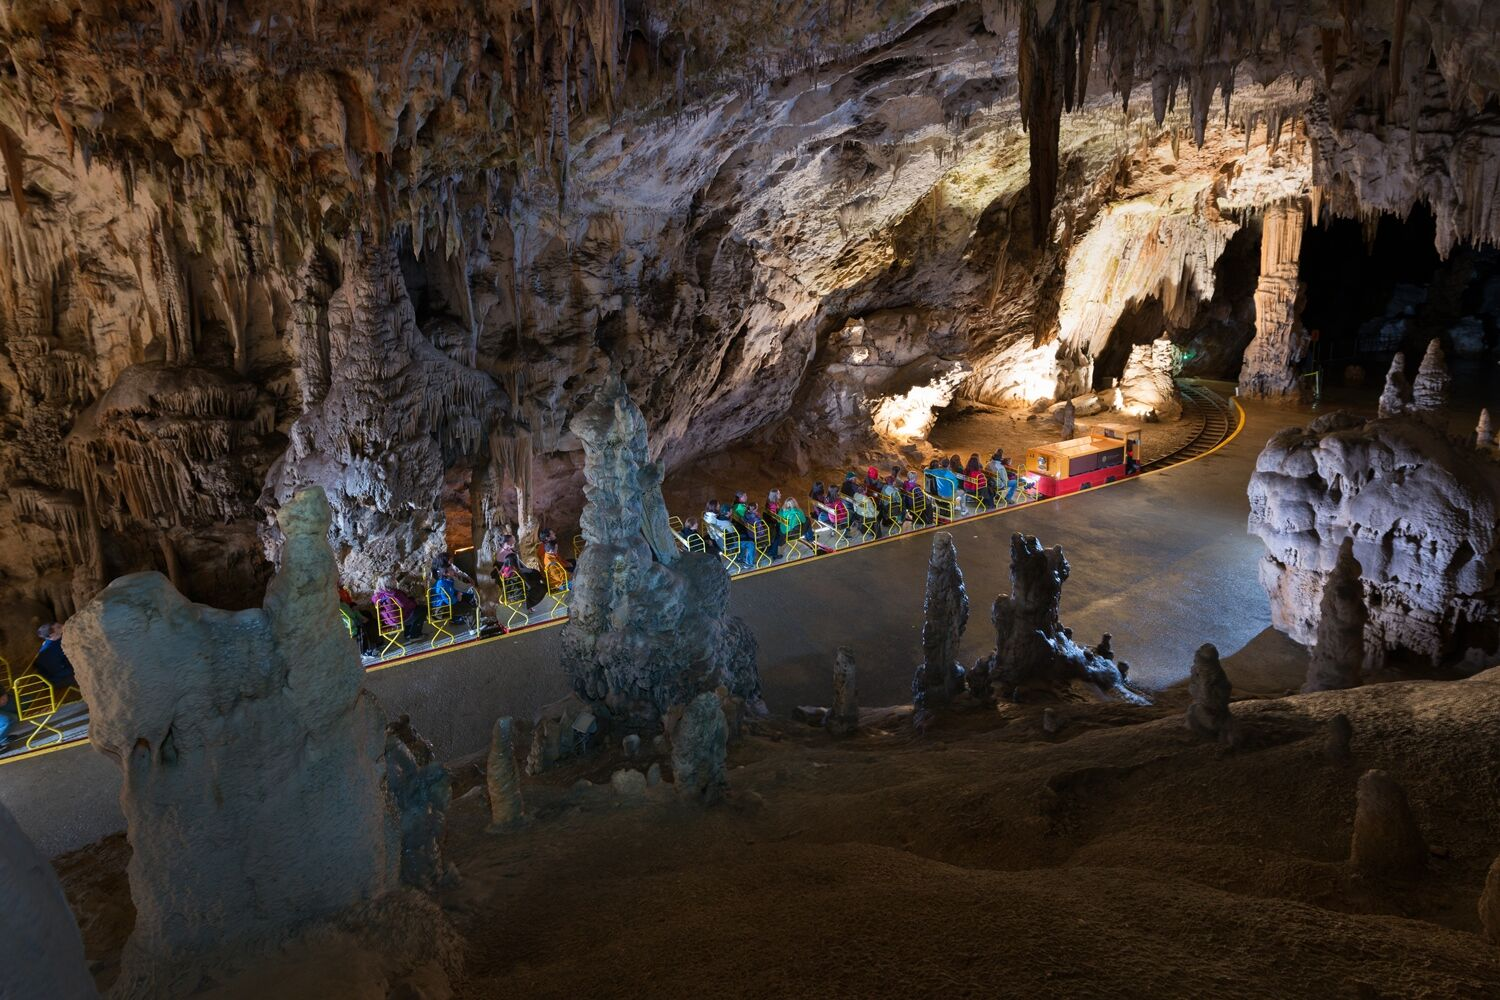 A train carries tourists on a tour of Postojna Cave. Image credit: Postojna Cave Park.